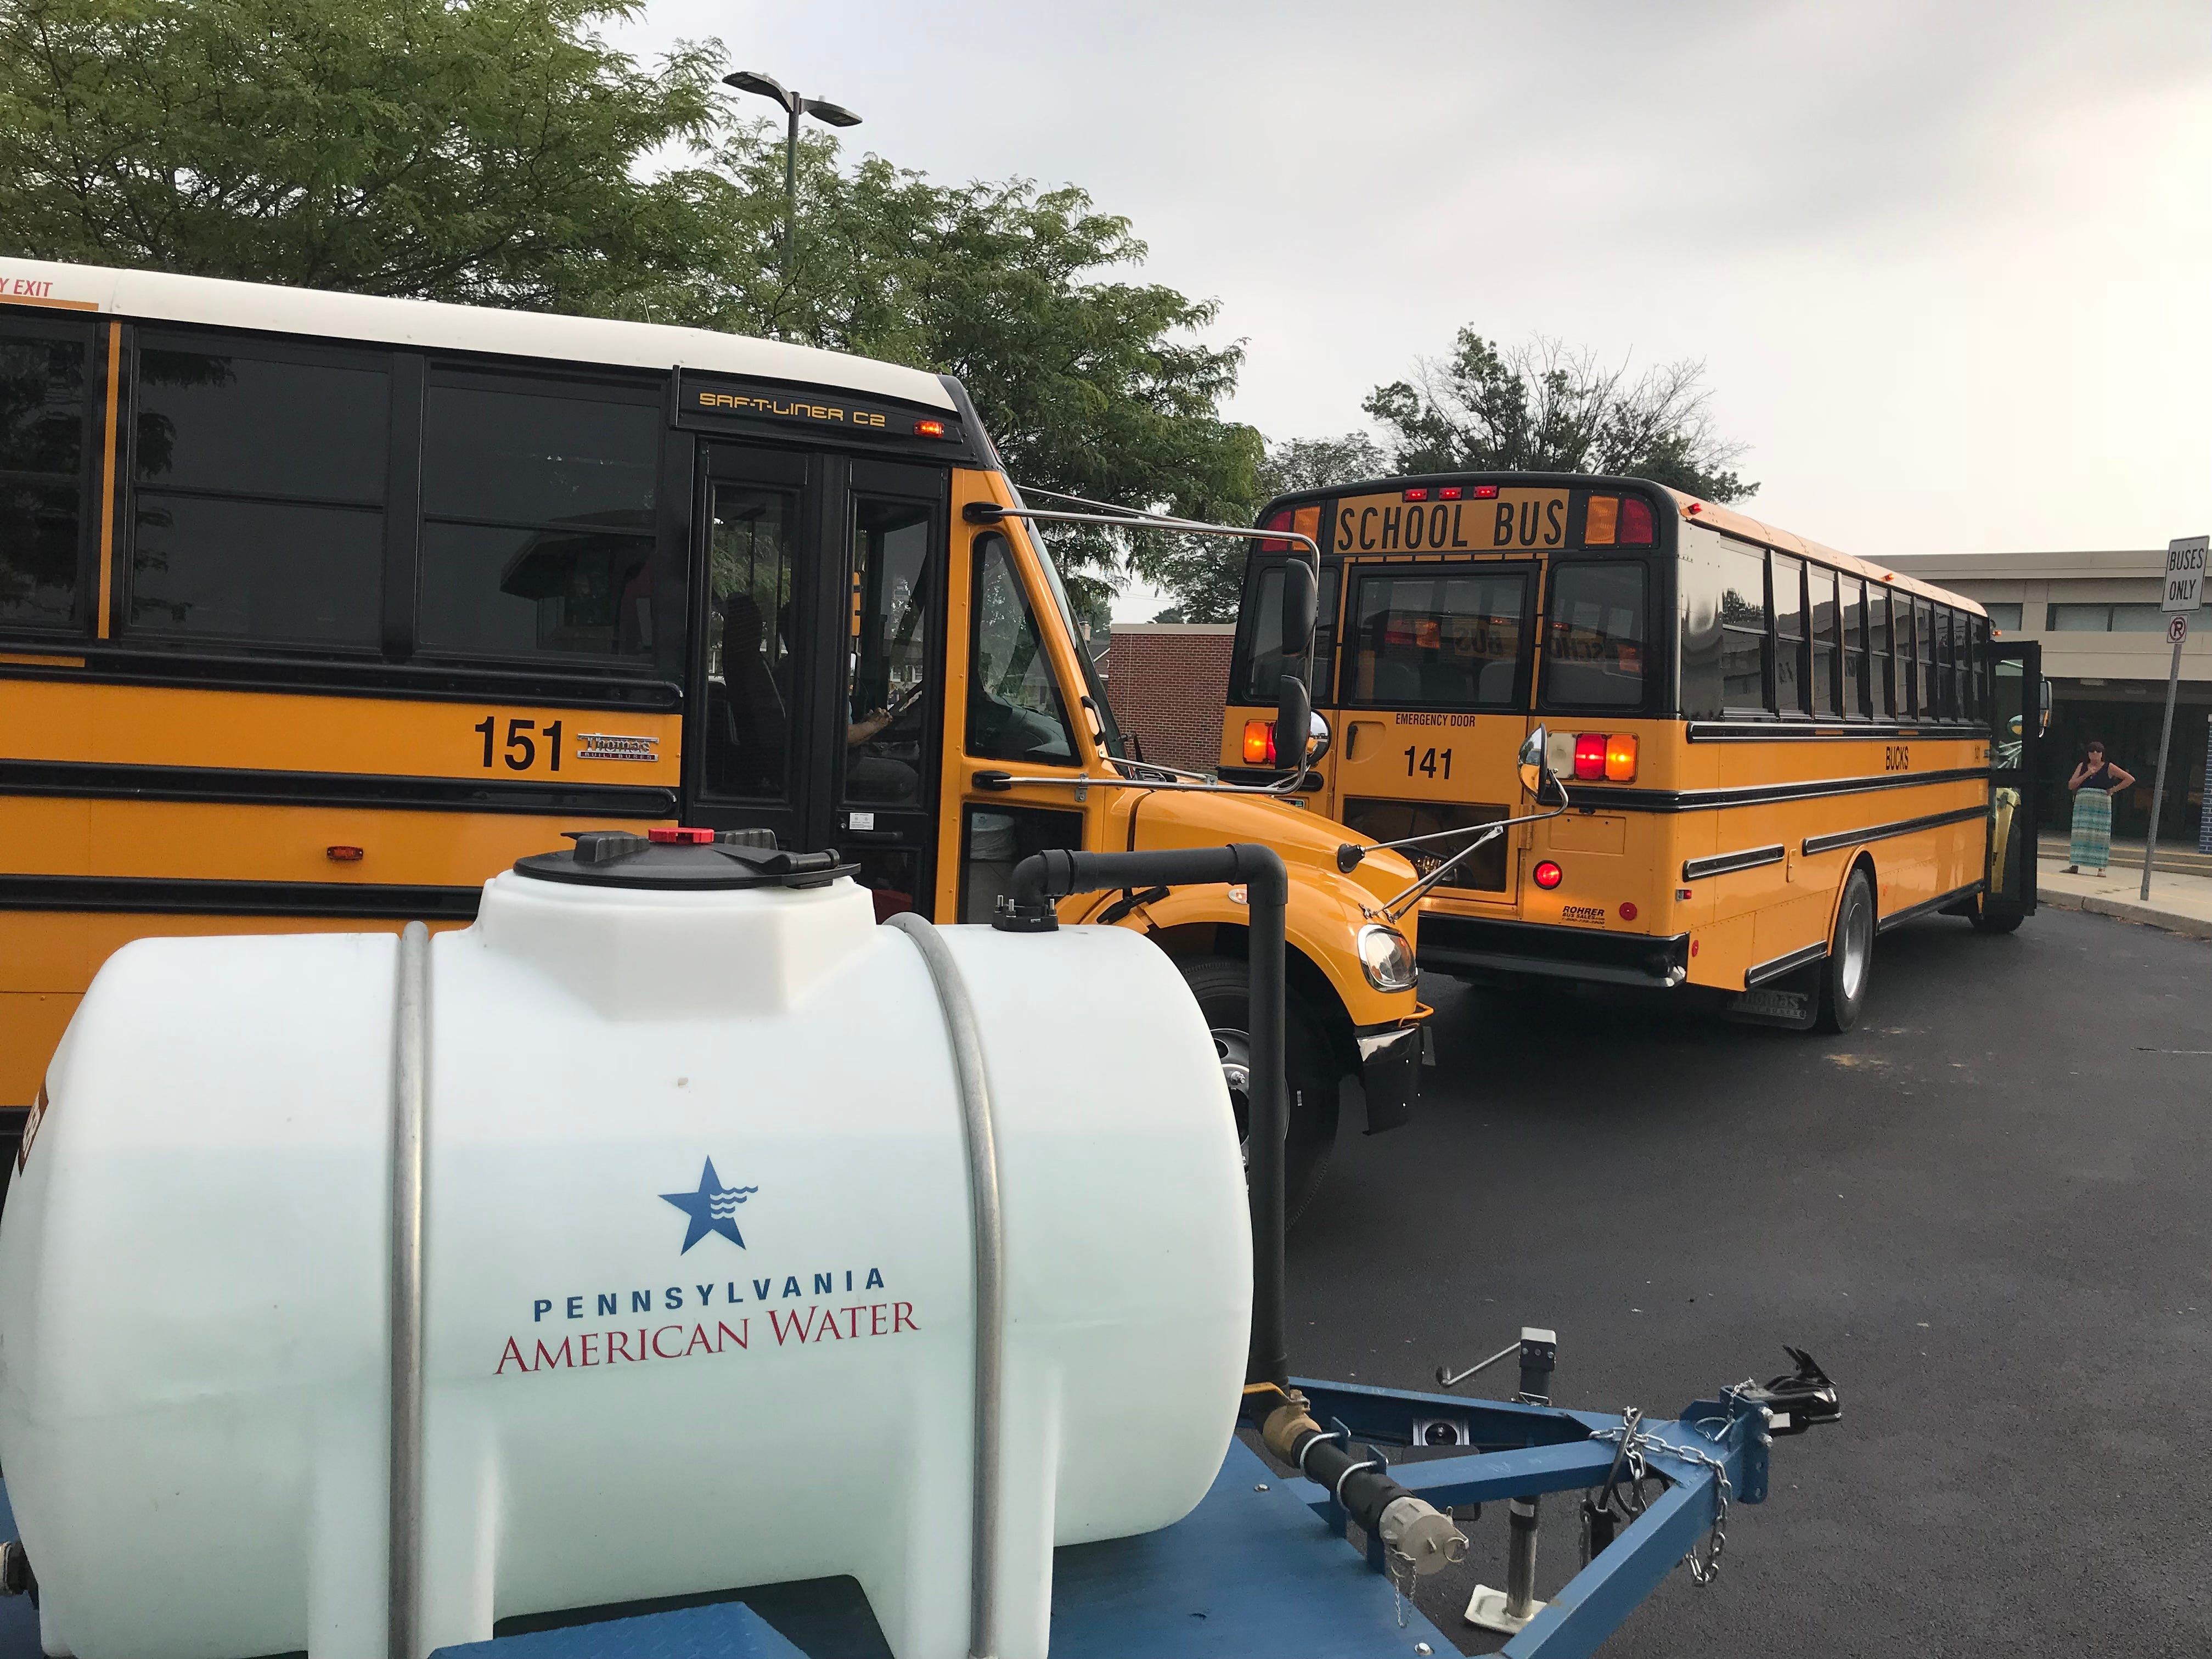 School buses drop off students at Pine Street Elementary School for the first day of school.